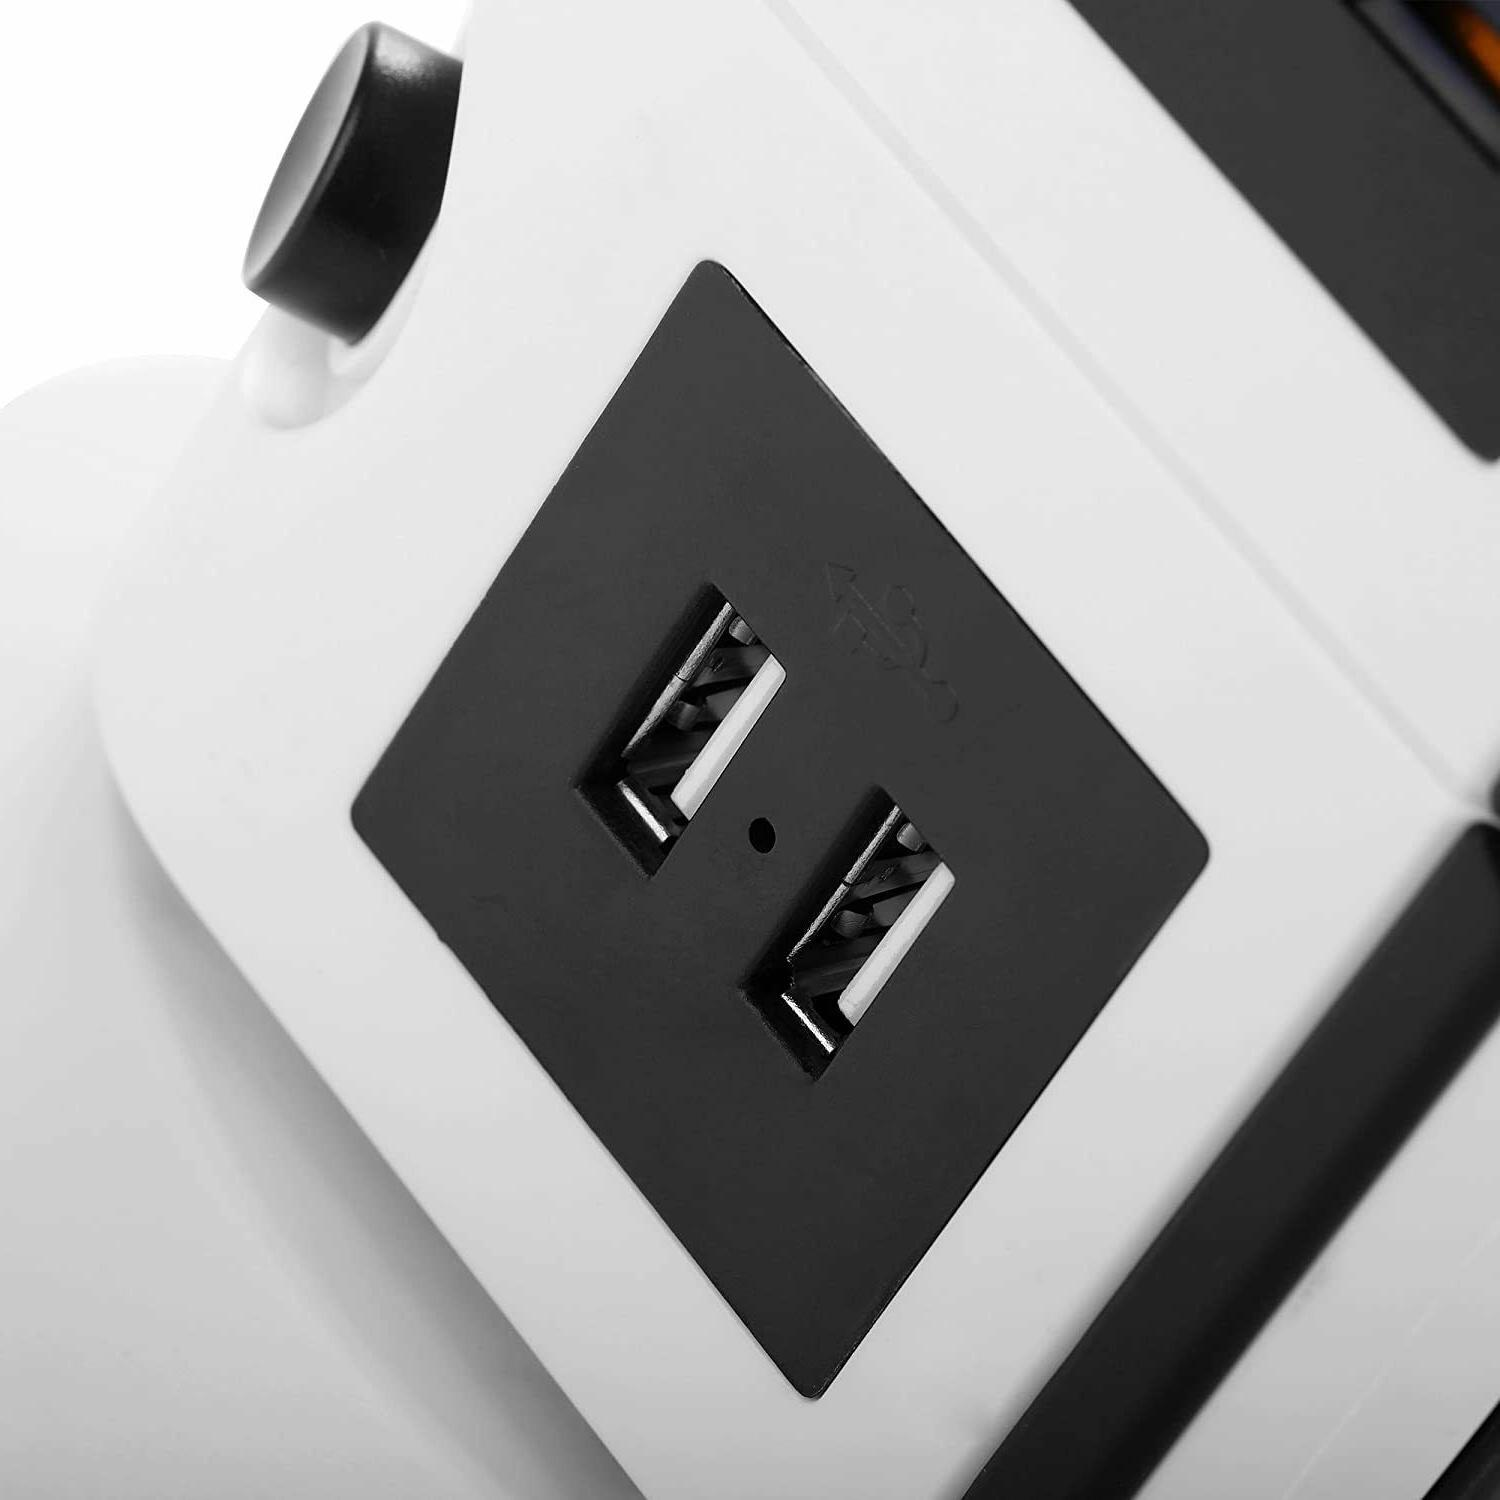 14-Outlet Power Strip with 2.1A USB Ports 6.5-Feet